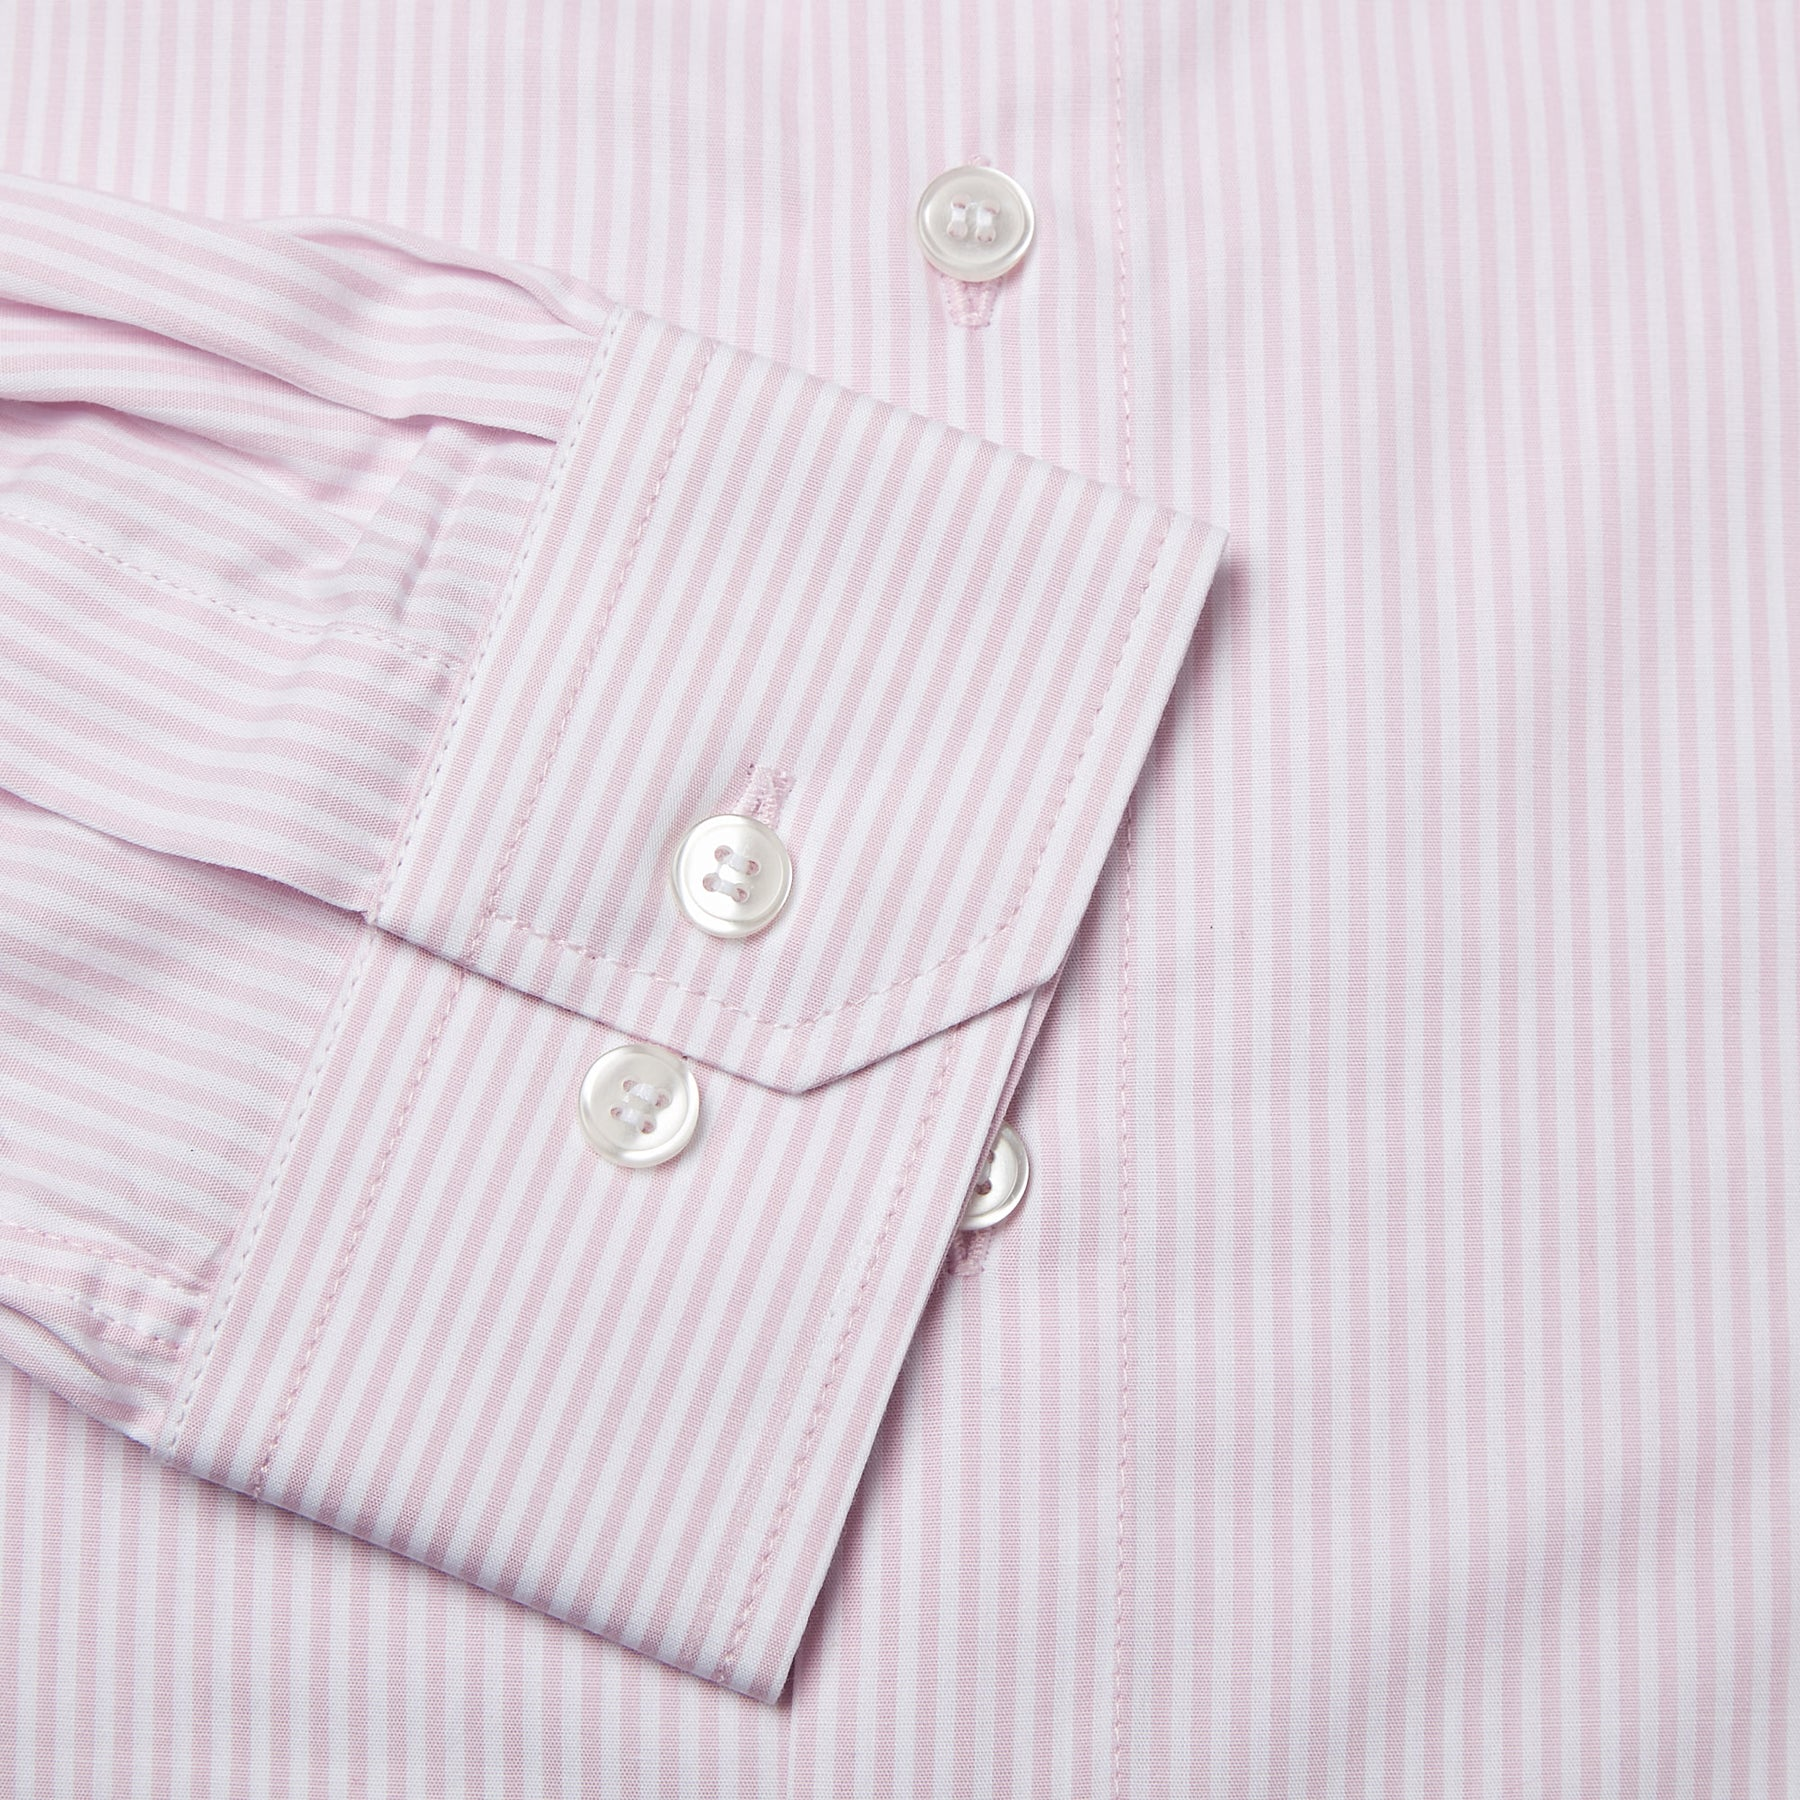 Rael Brook Tailored Fit Pink Candy Stripe Single Cuff Shirt Cuff